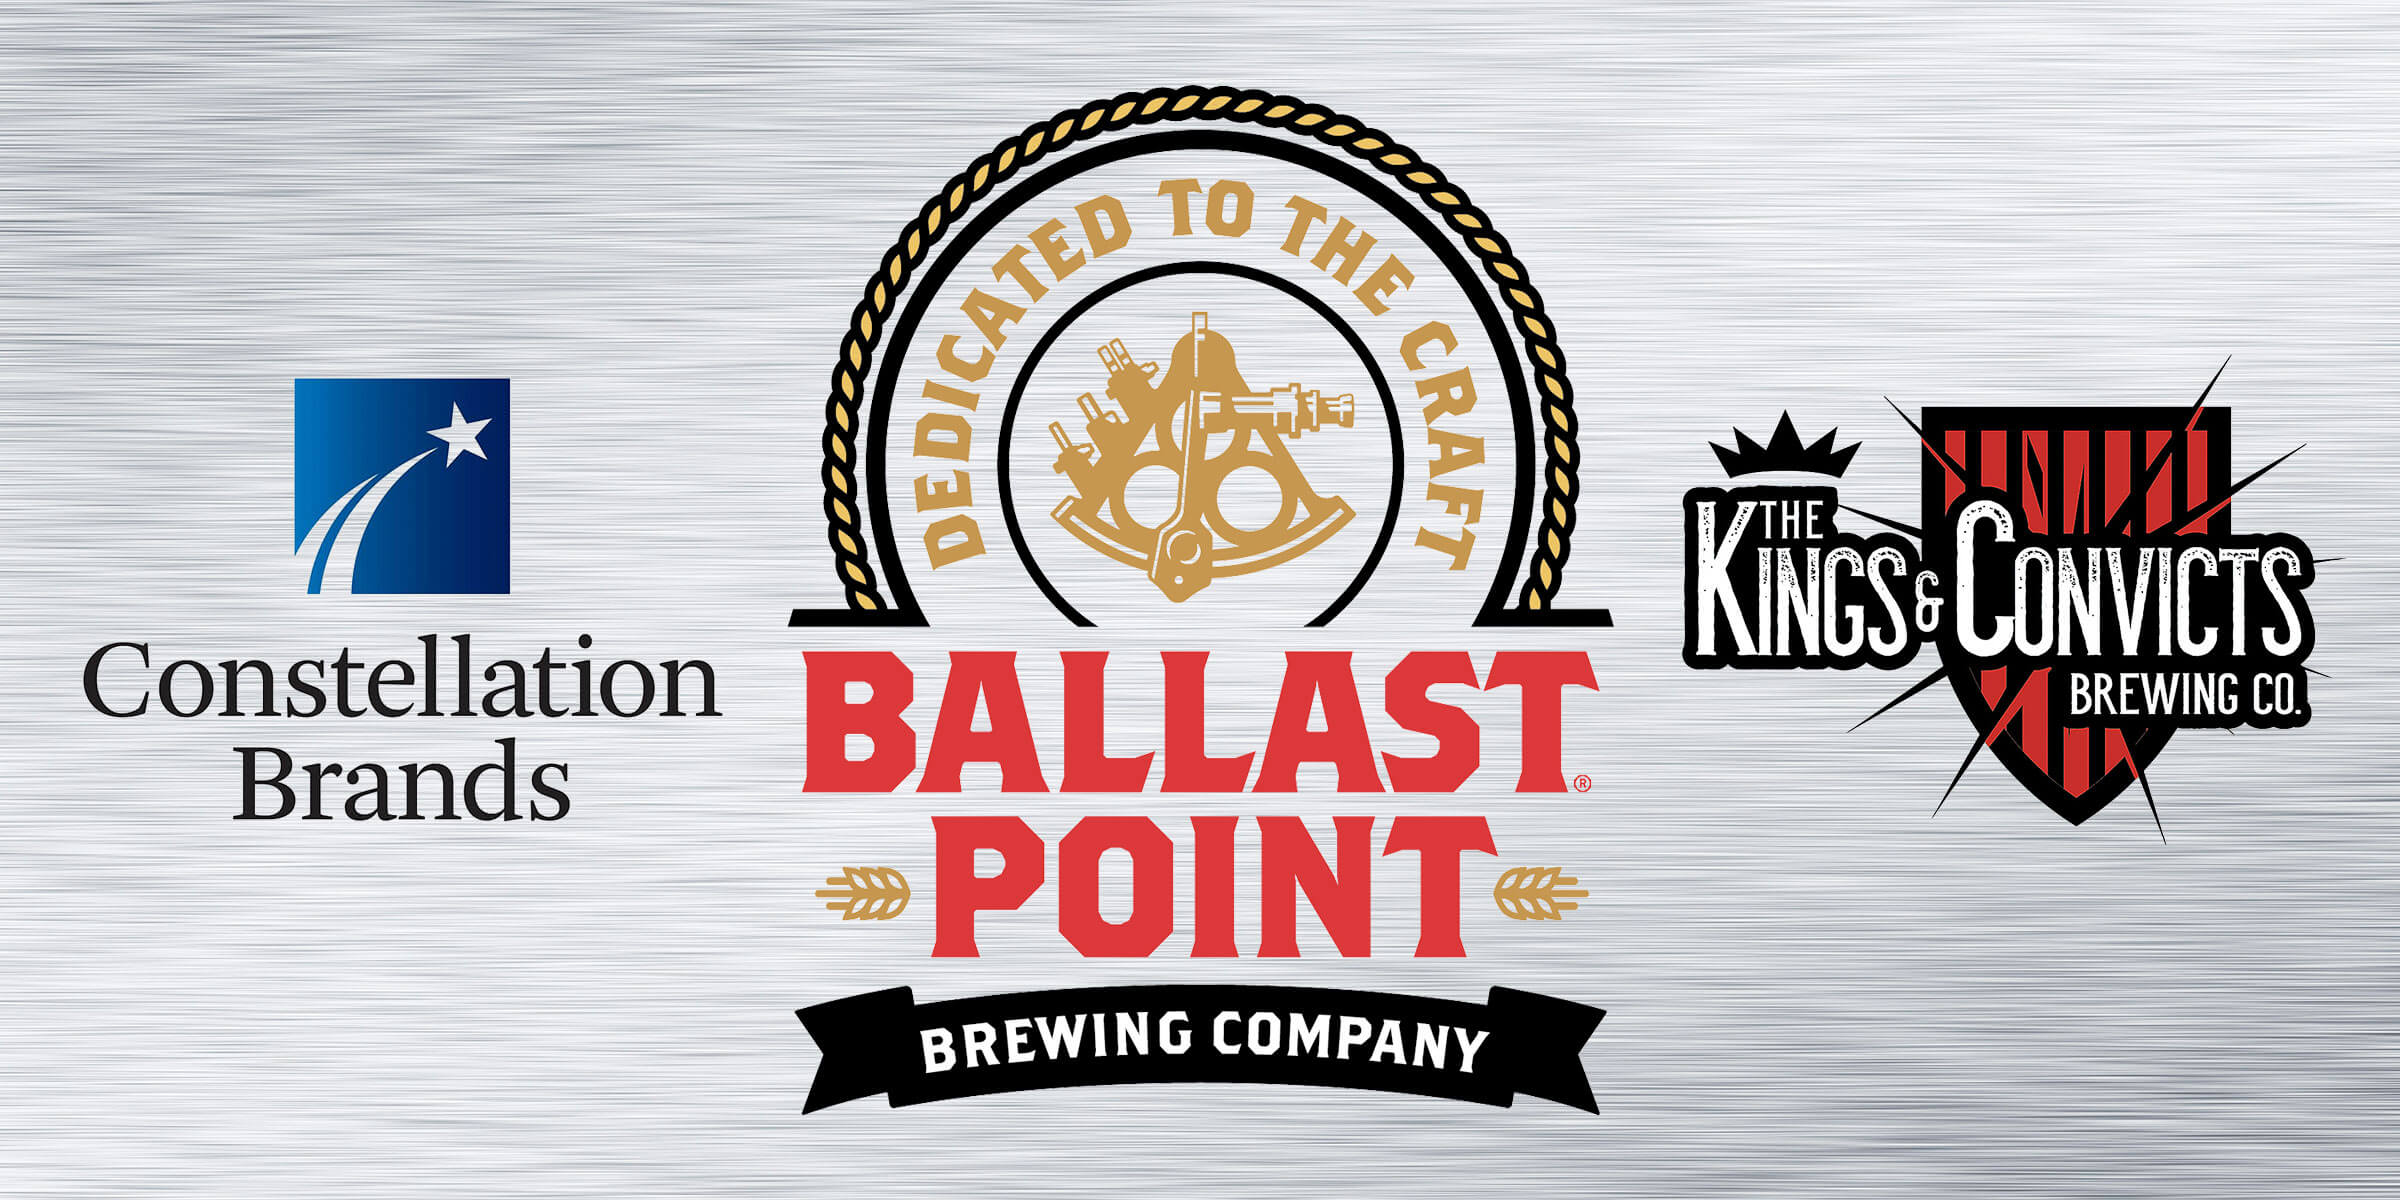 Kings & Convicts Brewing has signed an agreement with Constellation Brands to acquire Ballast Point Brewing and a number of its facilities and brewpubs.